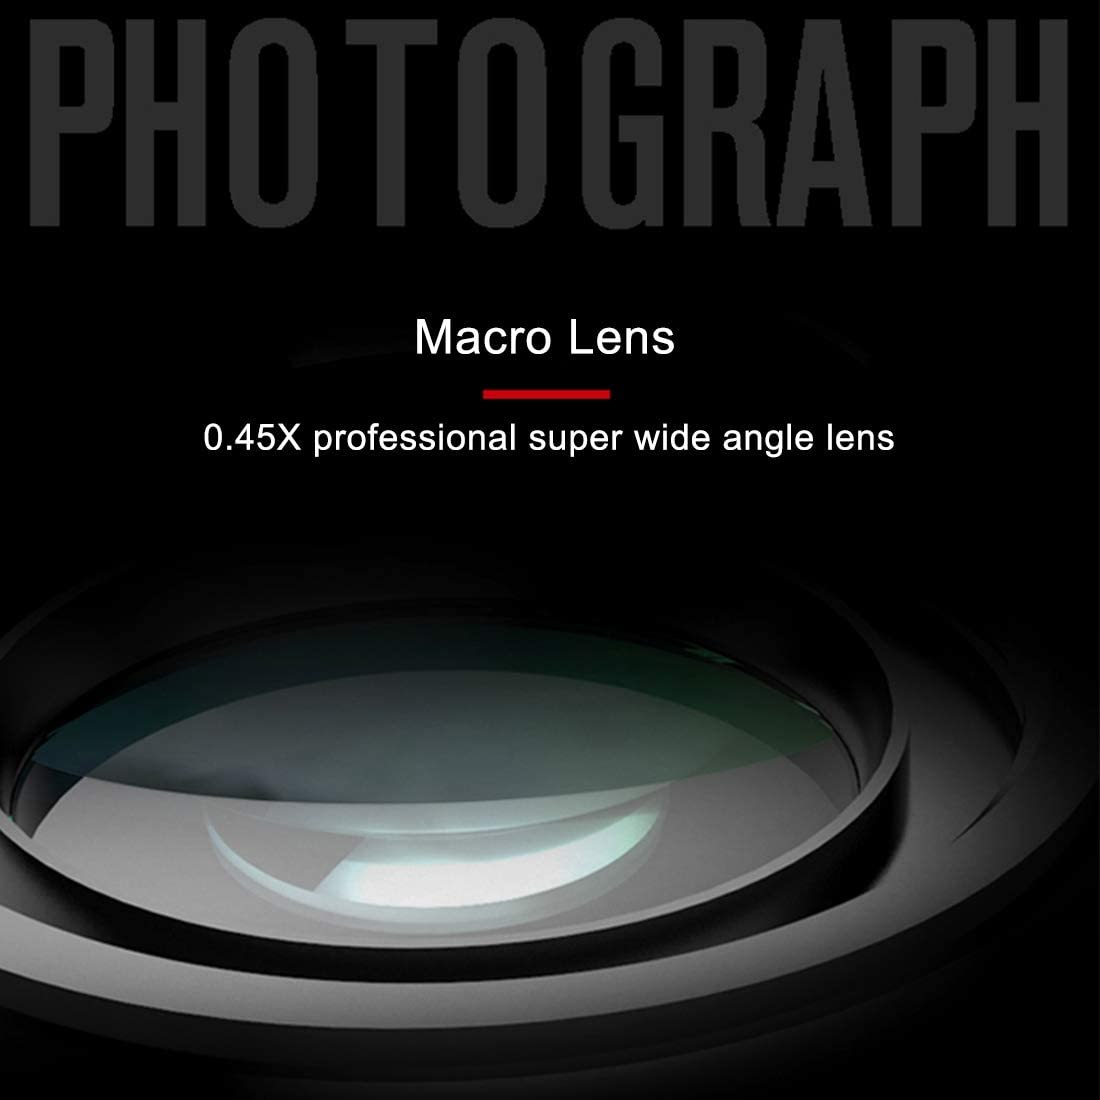 Happyshopping Camera Lens 62mm 0.45X Super Wide Angle Lens with Macro Lens